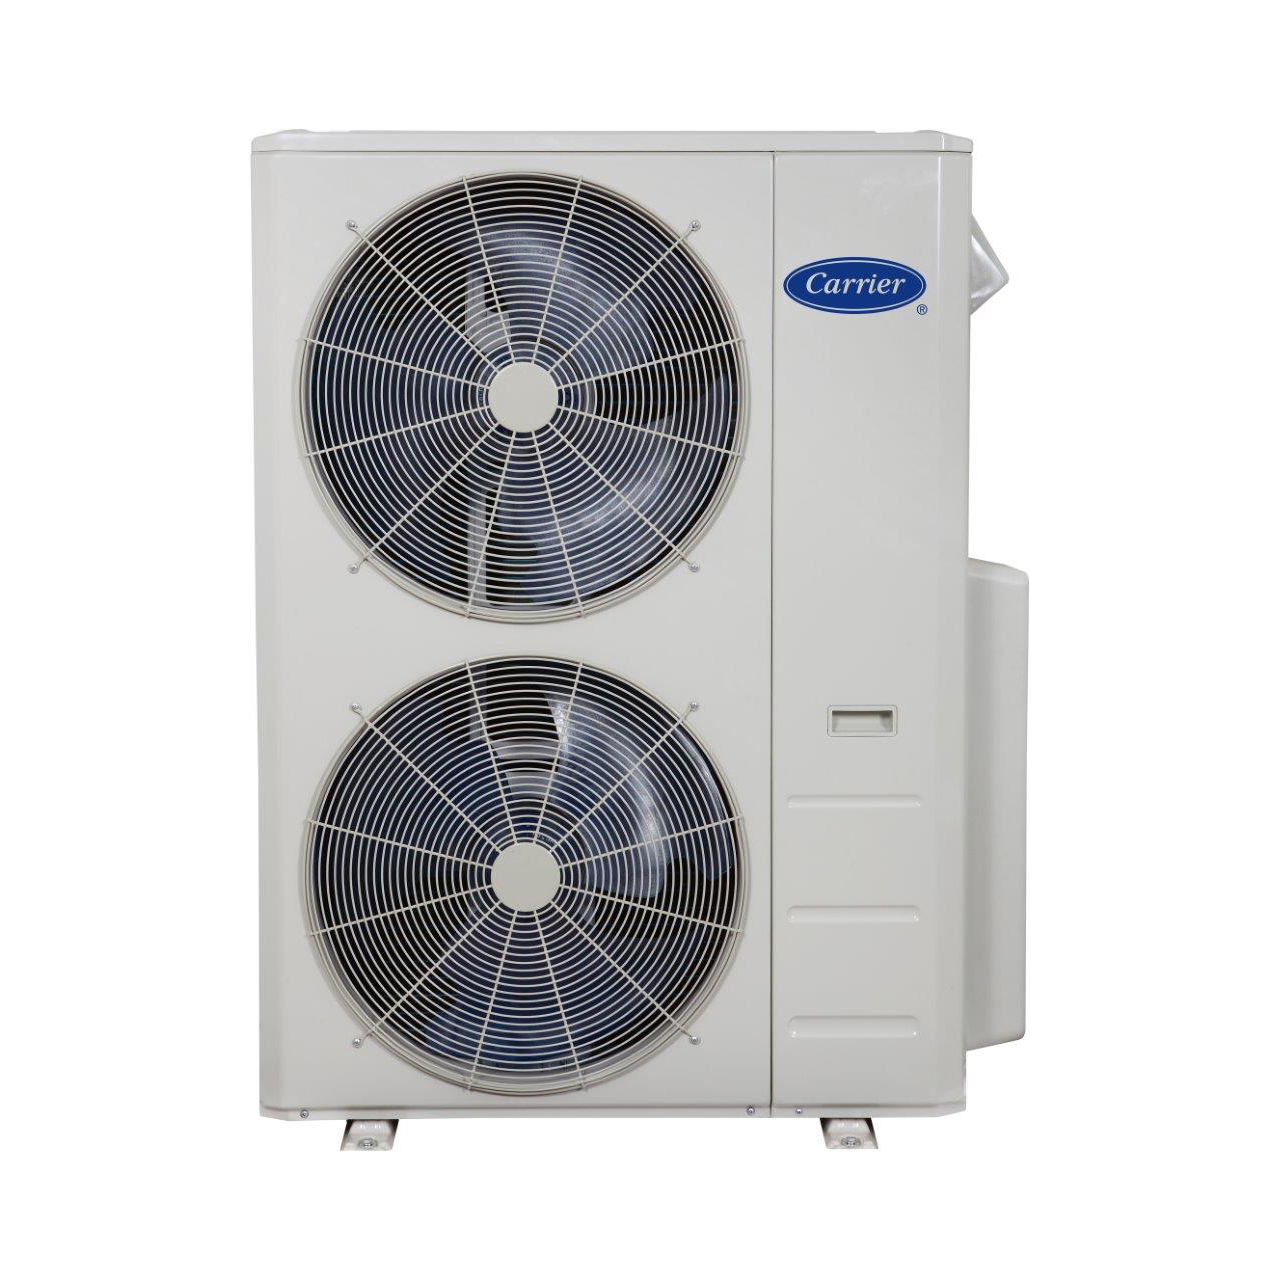 carrier-38mgr-ductless-system-multi-zone-heat-pump-with-basepan-heater-a